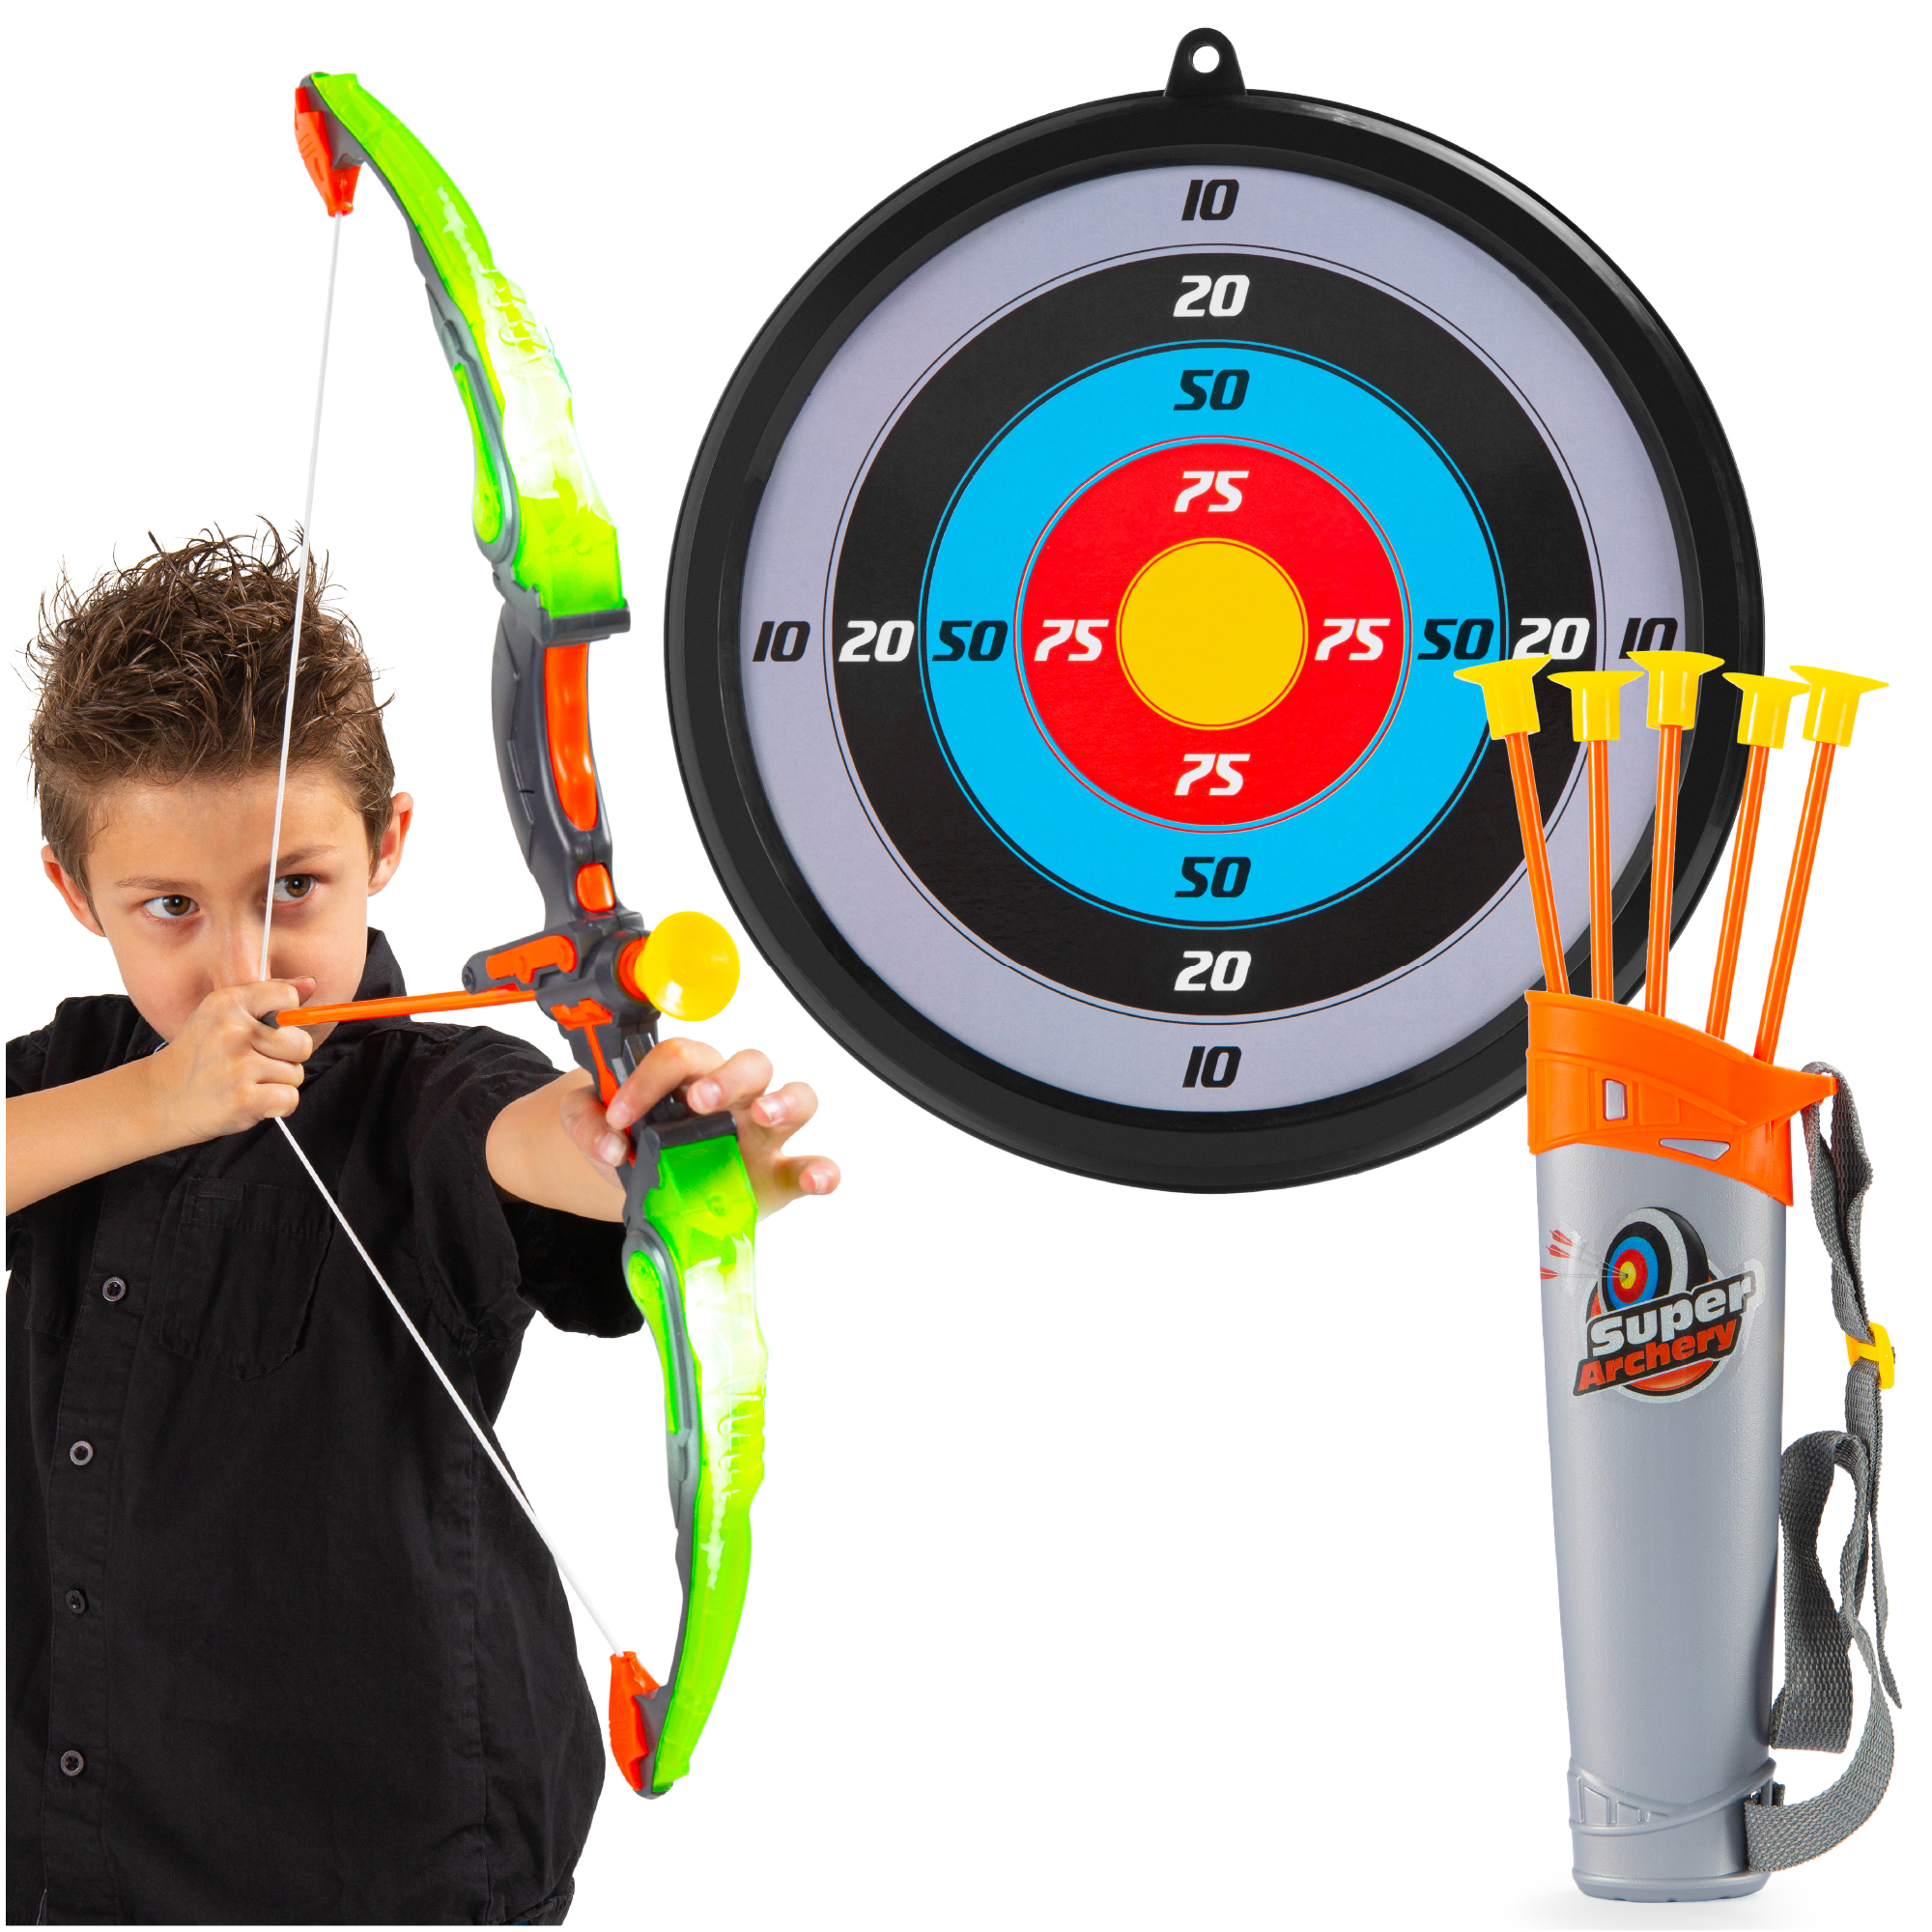 Suction Cup Arrows and Quiver NeatoTek 2 Packs Kids Archery Bow Arrow Toy Set with Targets LED Light Up Function Toy for Boys Girls Indoor and Outdoor Play